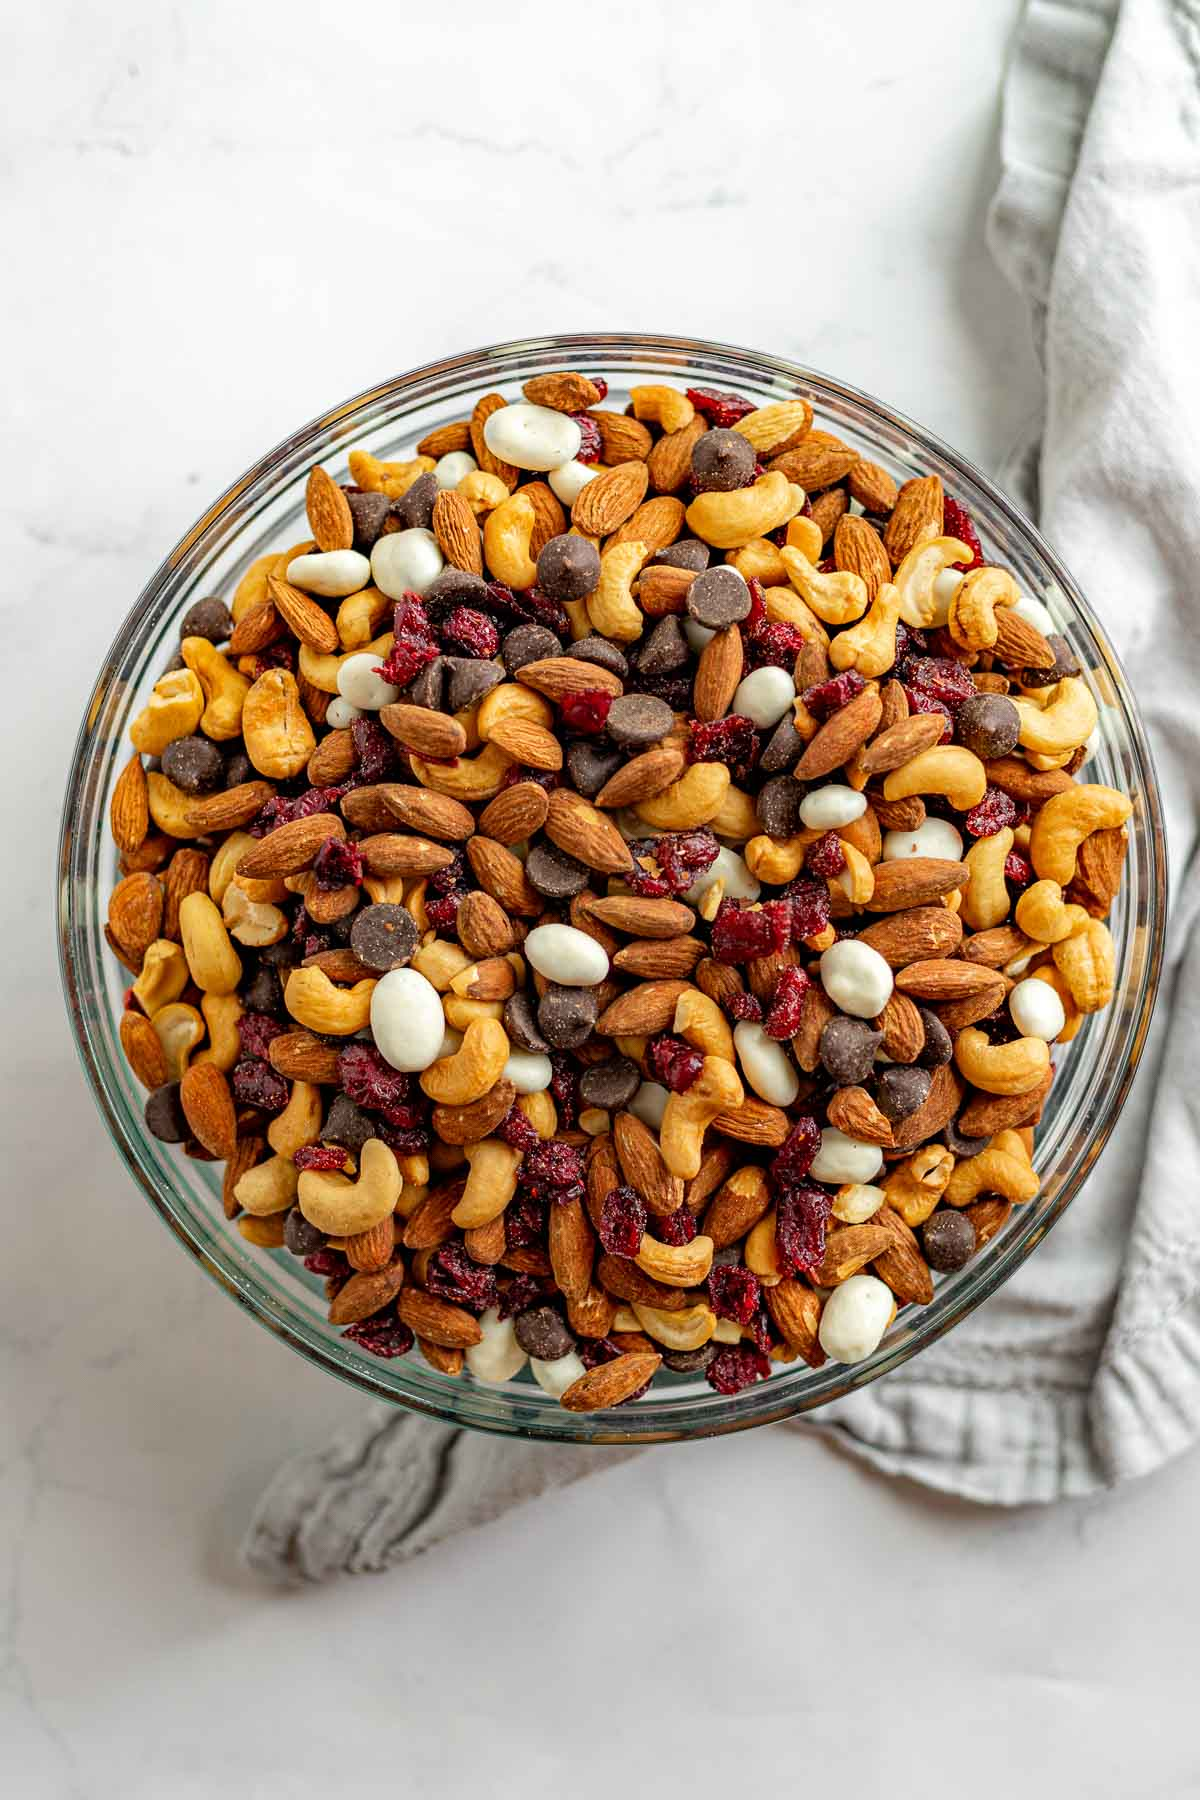 Cranberry Trail Mix in glass bowl